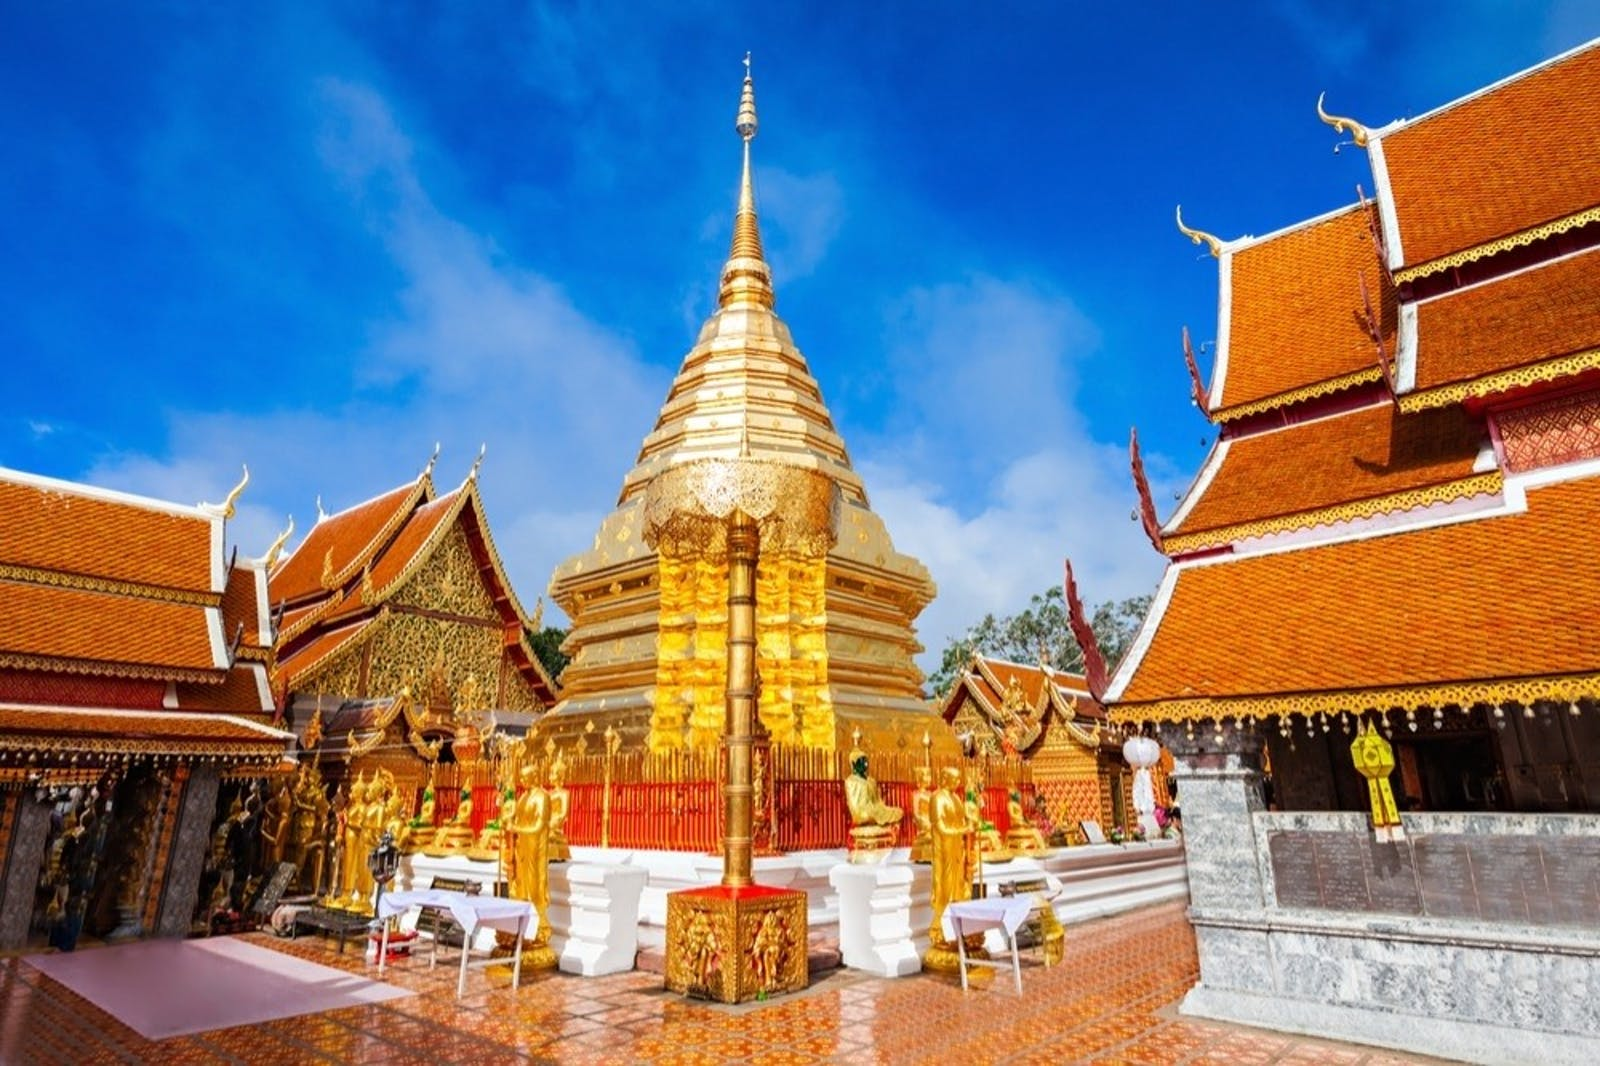 wat phra that doi suthep  buddhist temple near chiang mai thailand